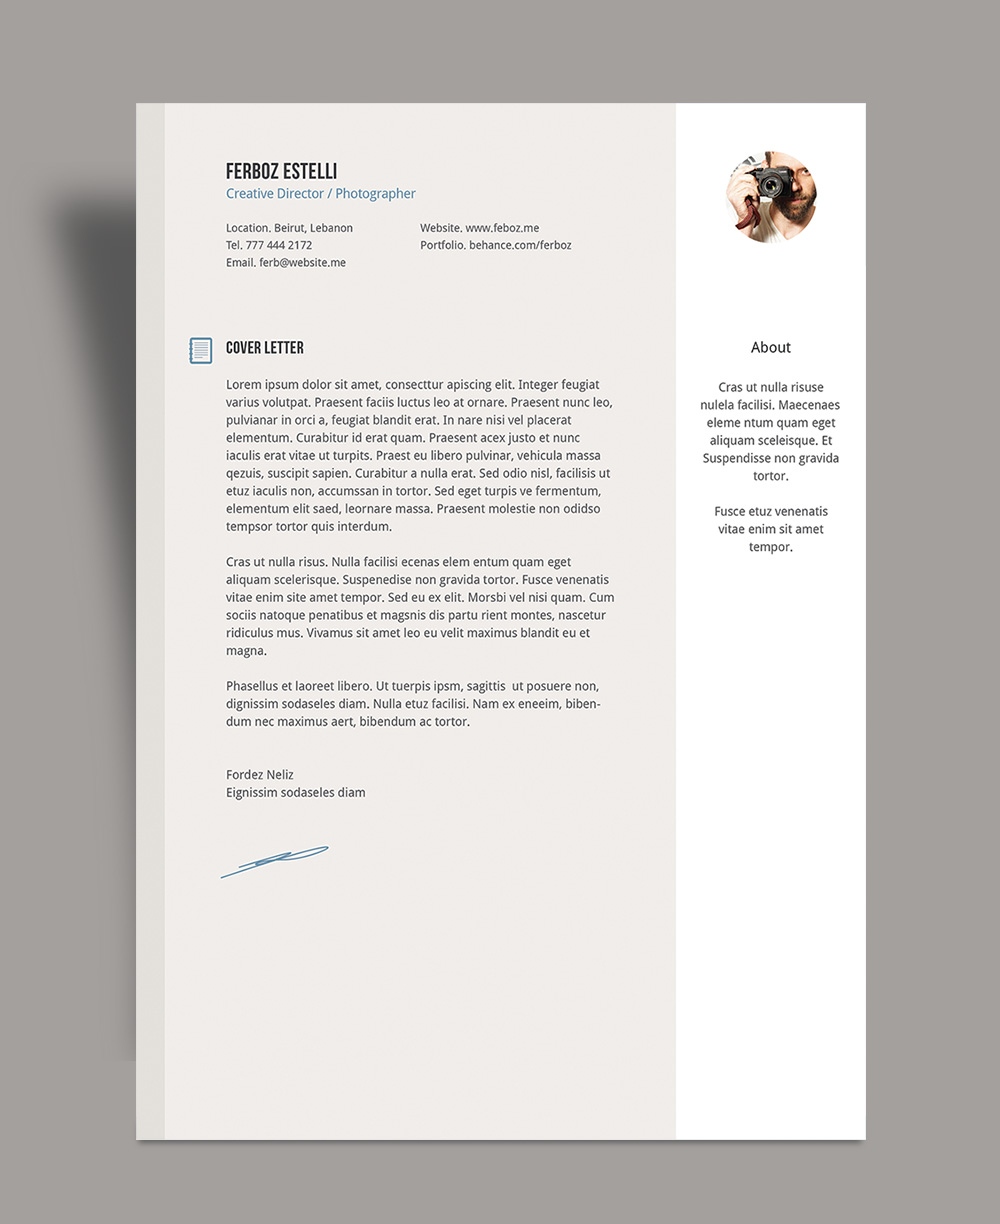 free professional resume  cv  template with cover letter  u0026 portfolio in ai for graphic designer